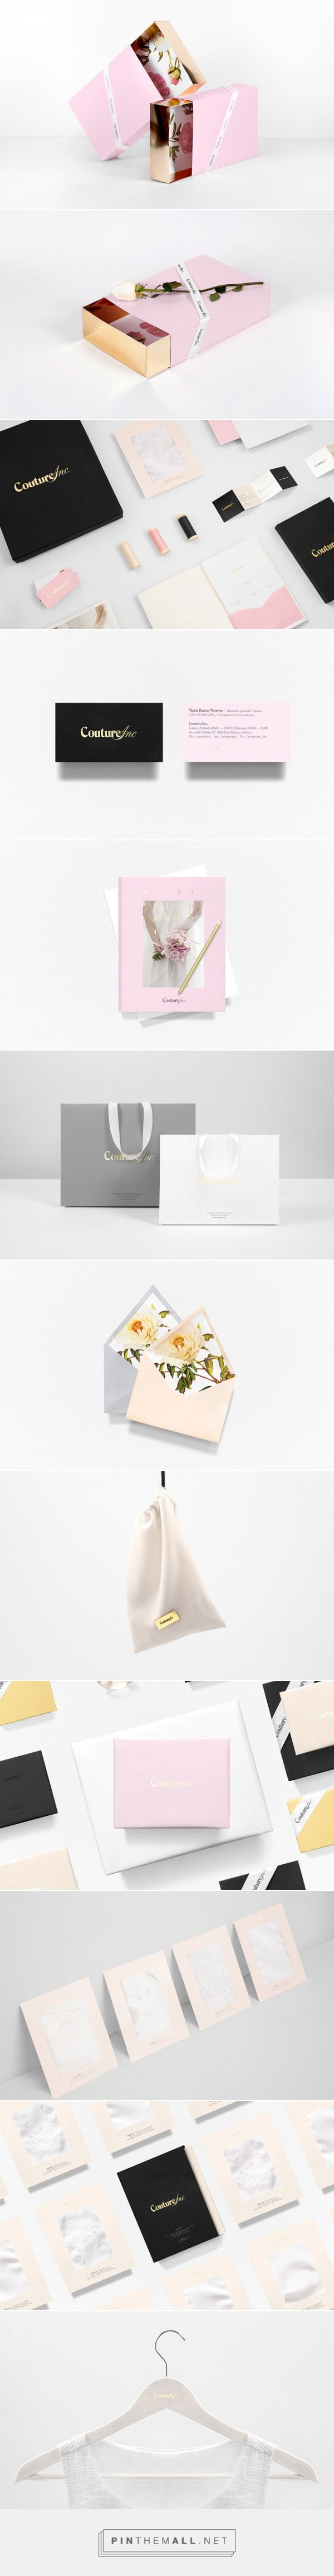 Couture Inc. #packaging by Anagrama - http://www.packagingoftheworld.com/2015/02/couture-inc.html                                                                                                                                                                                 More